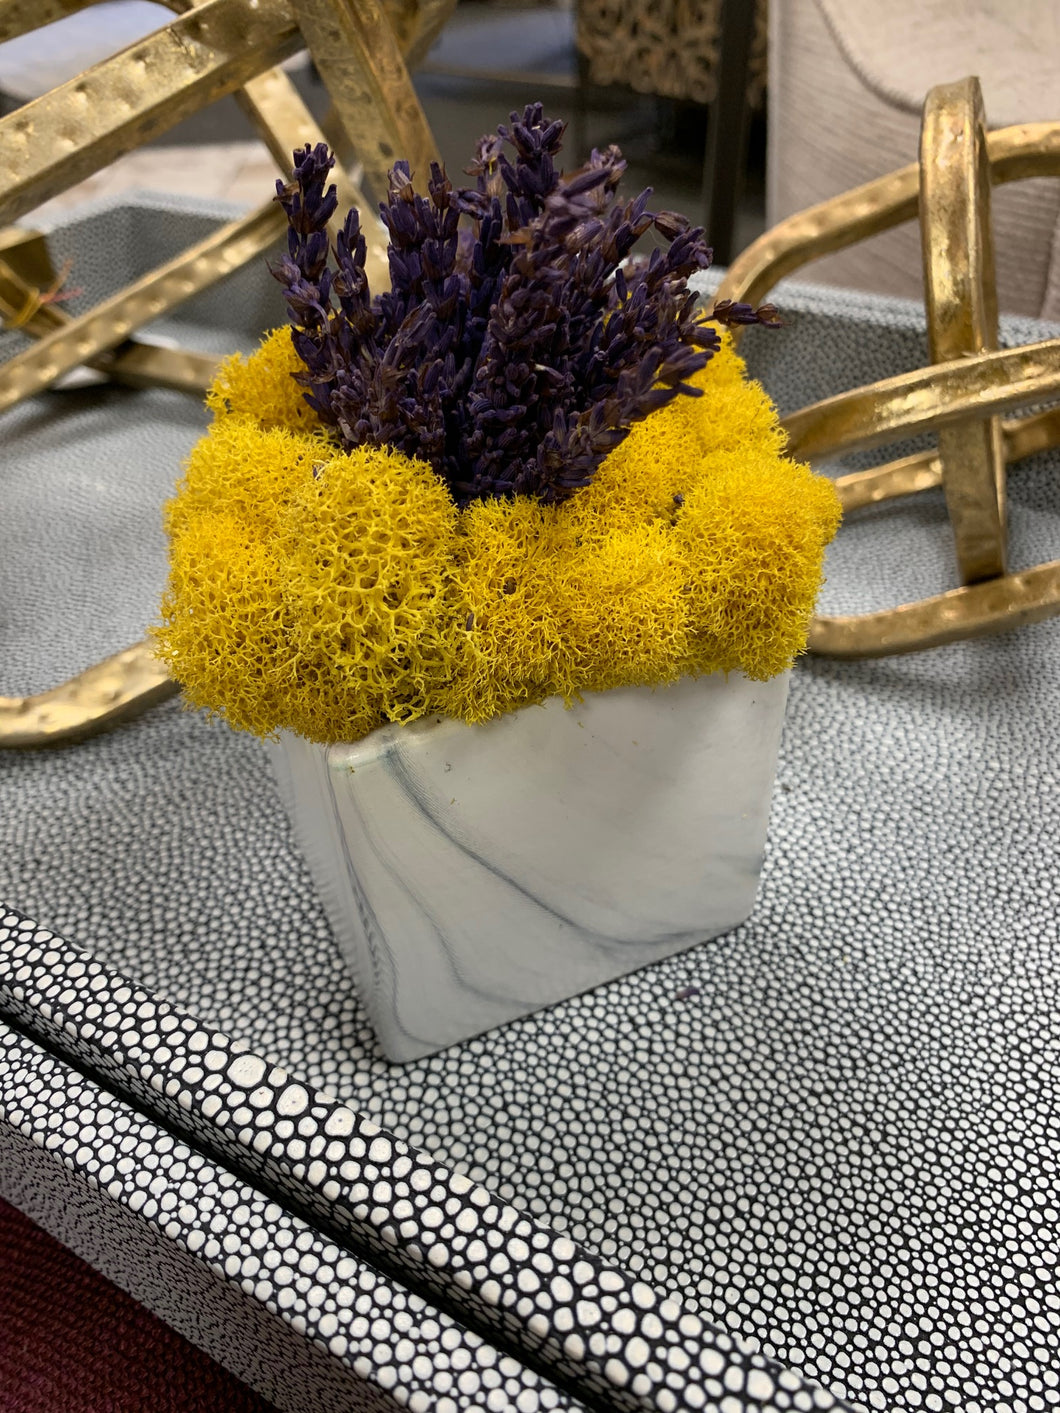 Lavendar and Yellow Moss in Vase